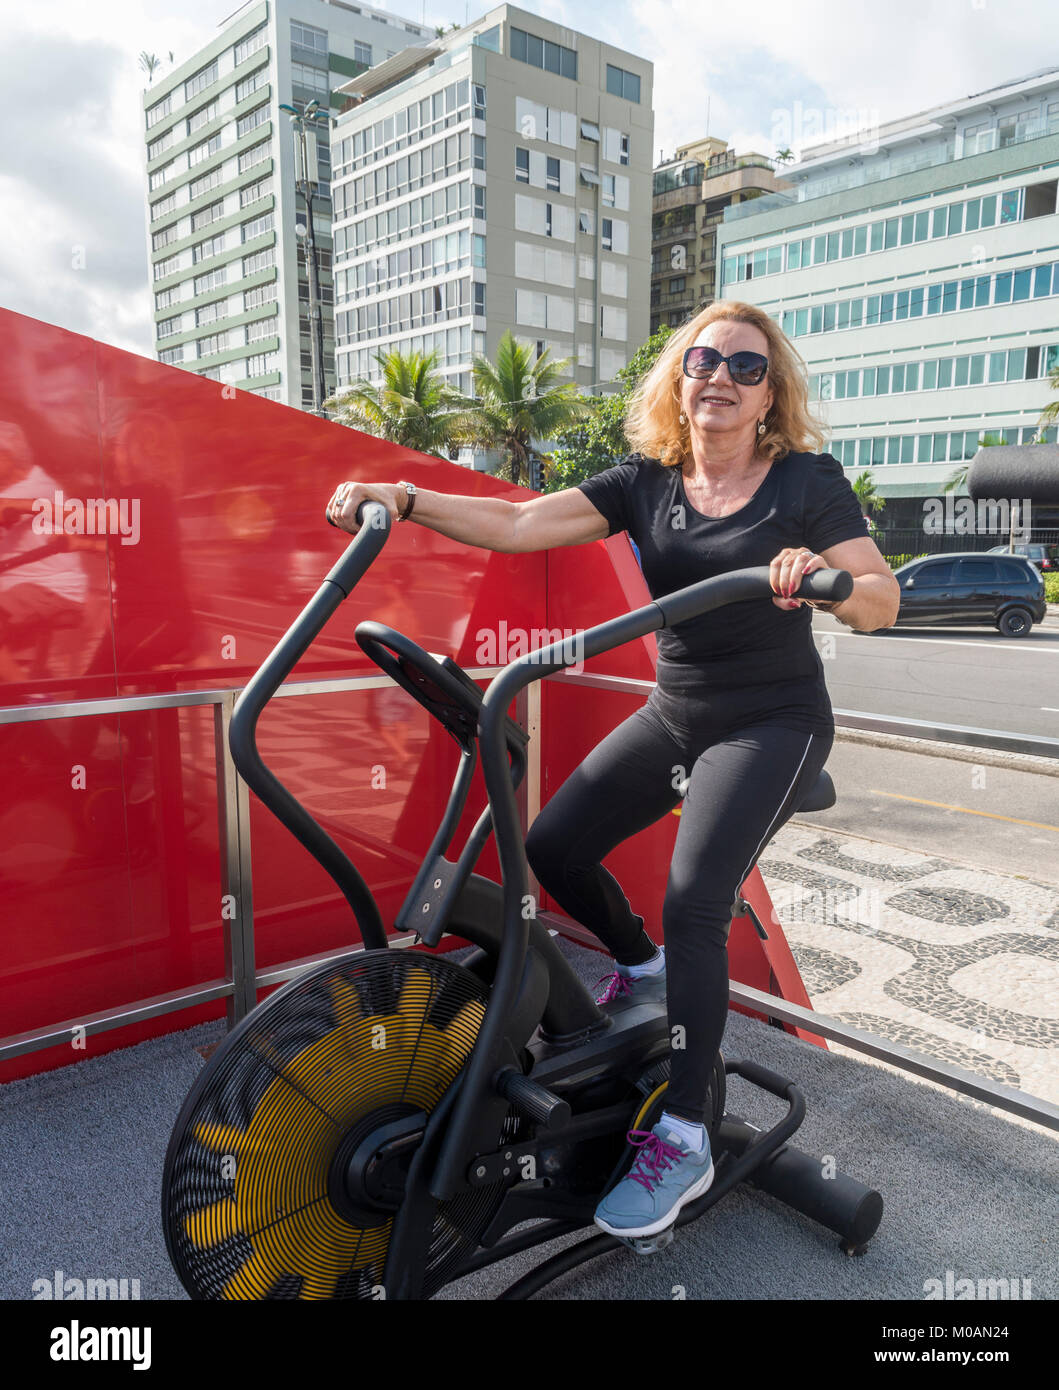 Model Released: Older woman (70-79) exercising on biking machine at open air gym in Rio de Janeiro, Brazil - Stock Image